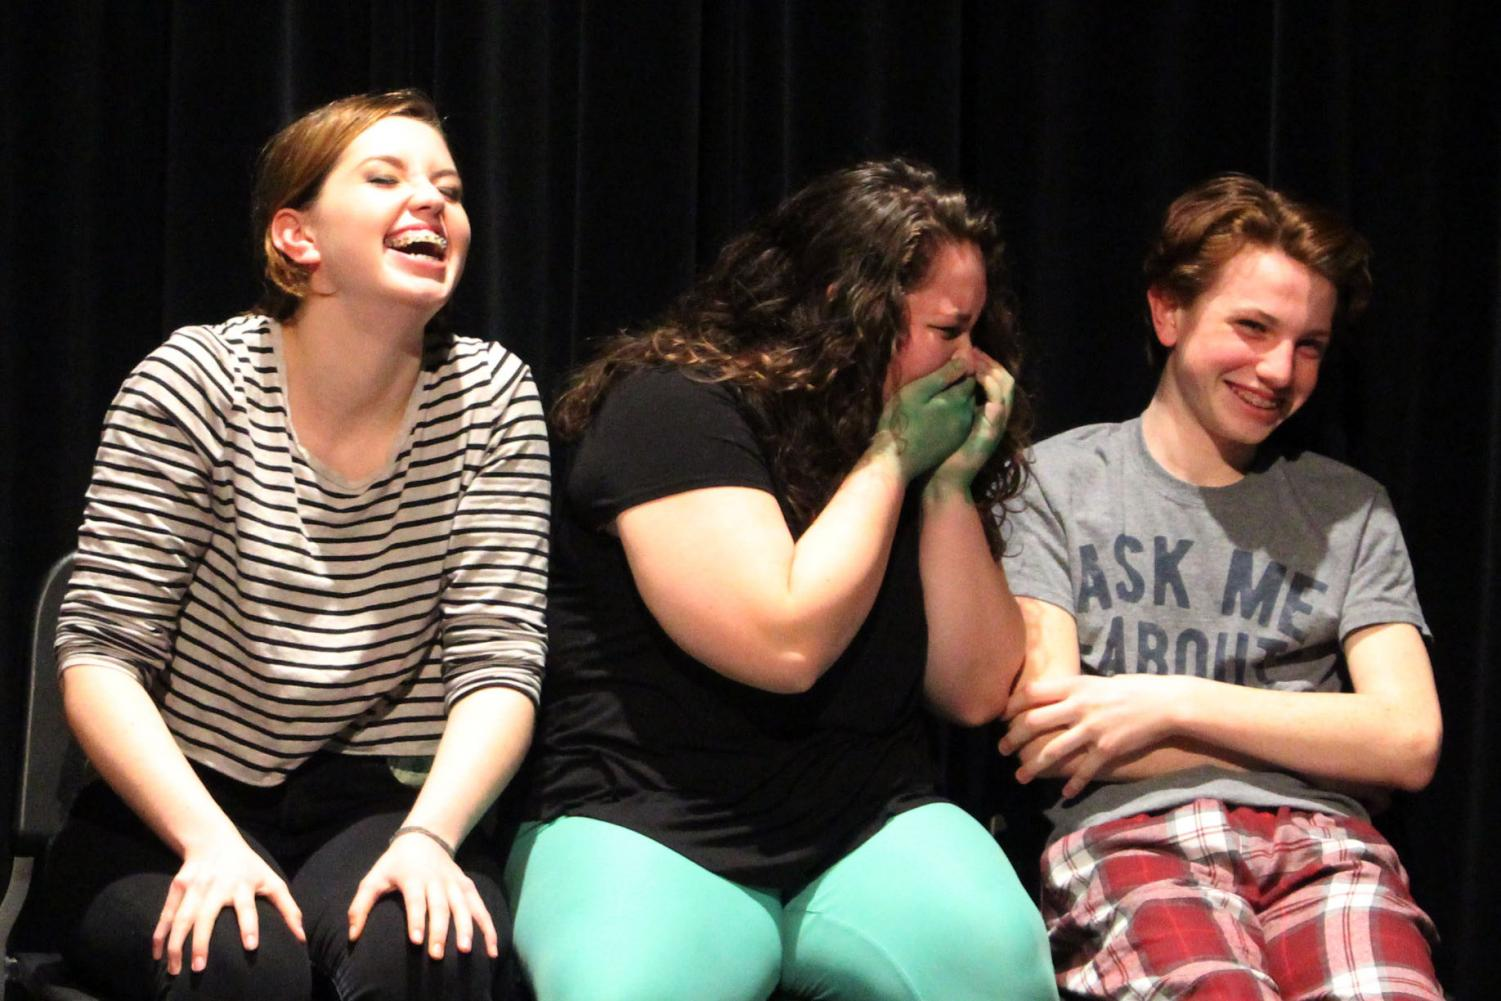 Casey+Pittman%2C+Elizabeth+Livorsi%2C+and+Jake+Zeitner+unable+to+hold+in+laughter+during+the+performance.